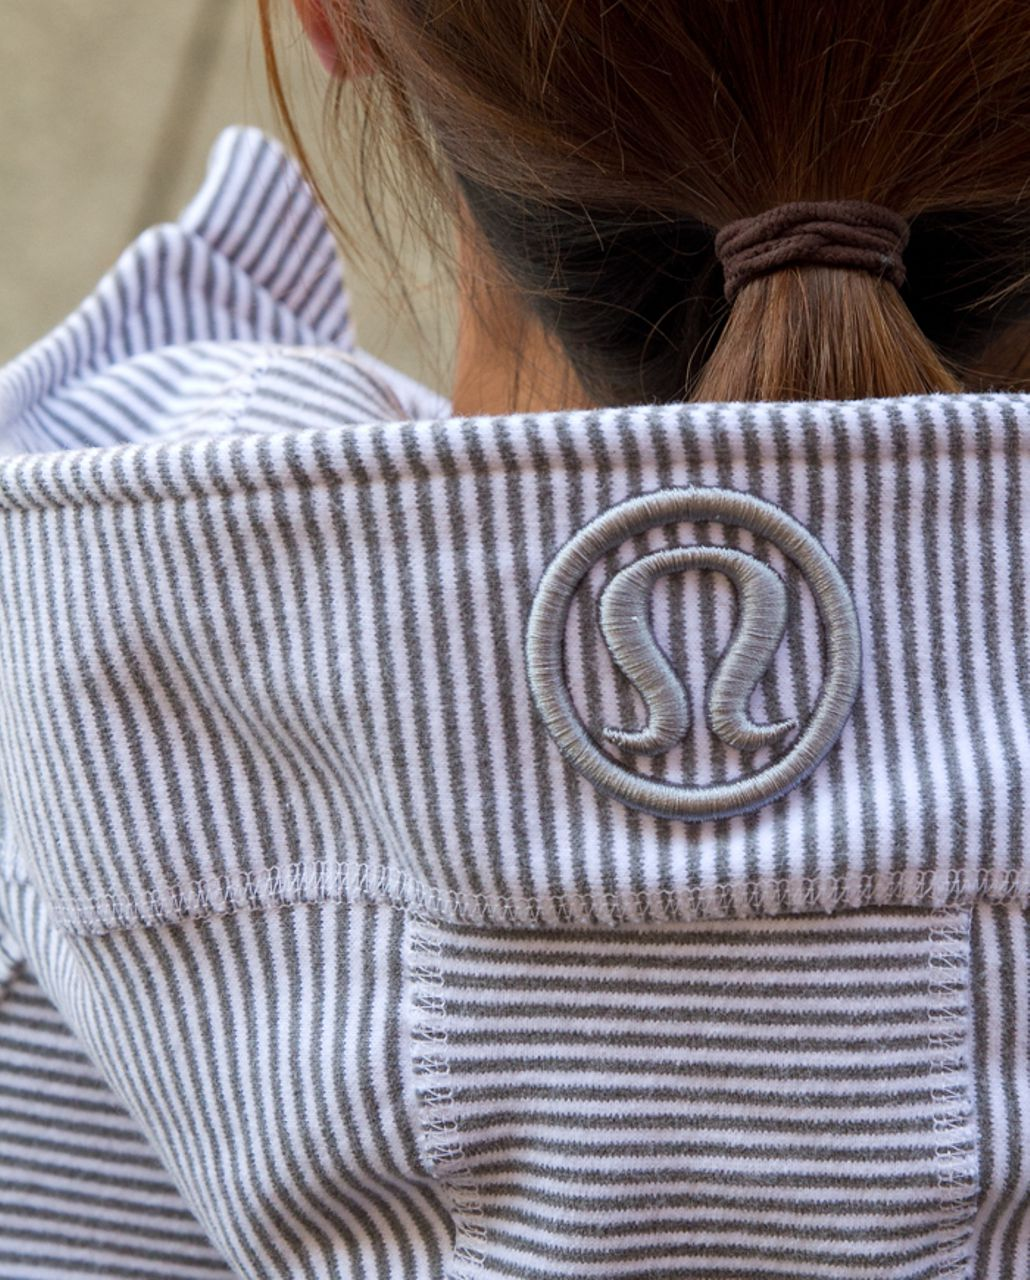 Lululemon Scuba Hoodie *Stripe - White Heathered Blurred Grey Classic Stripe